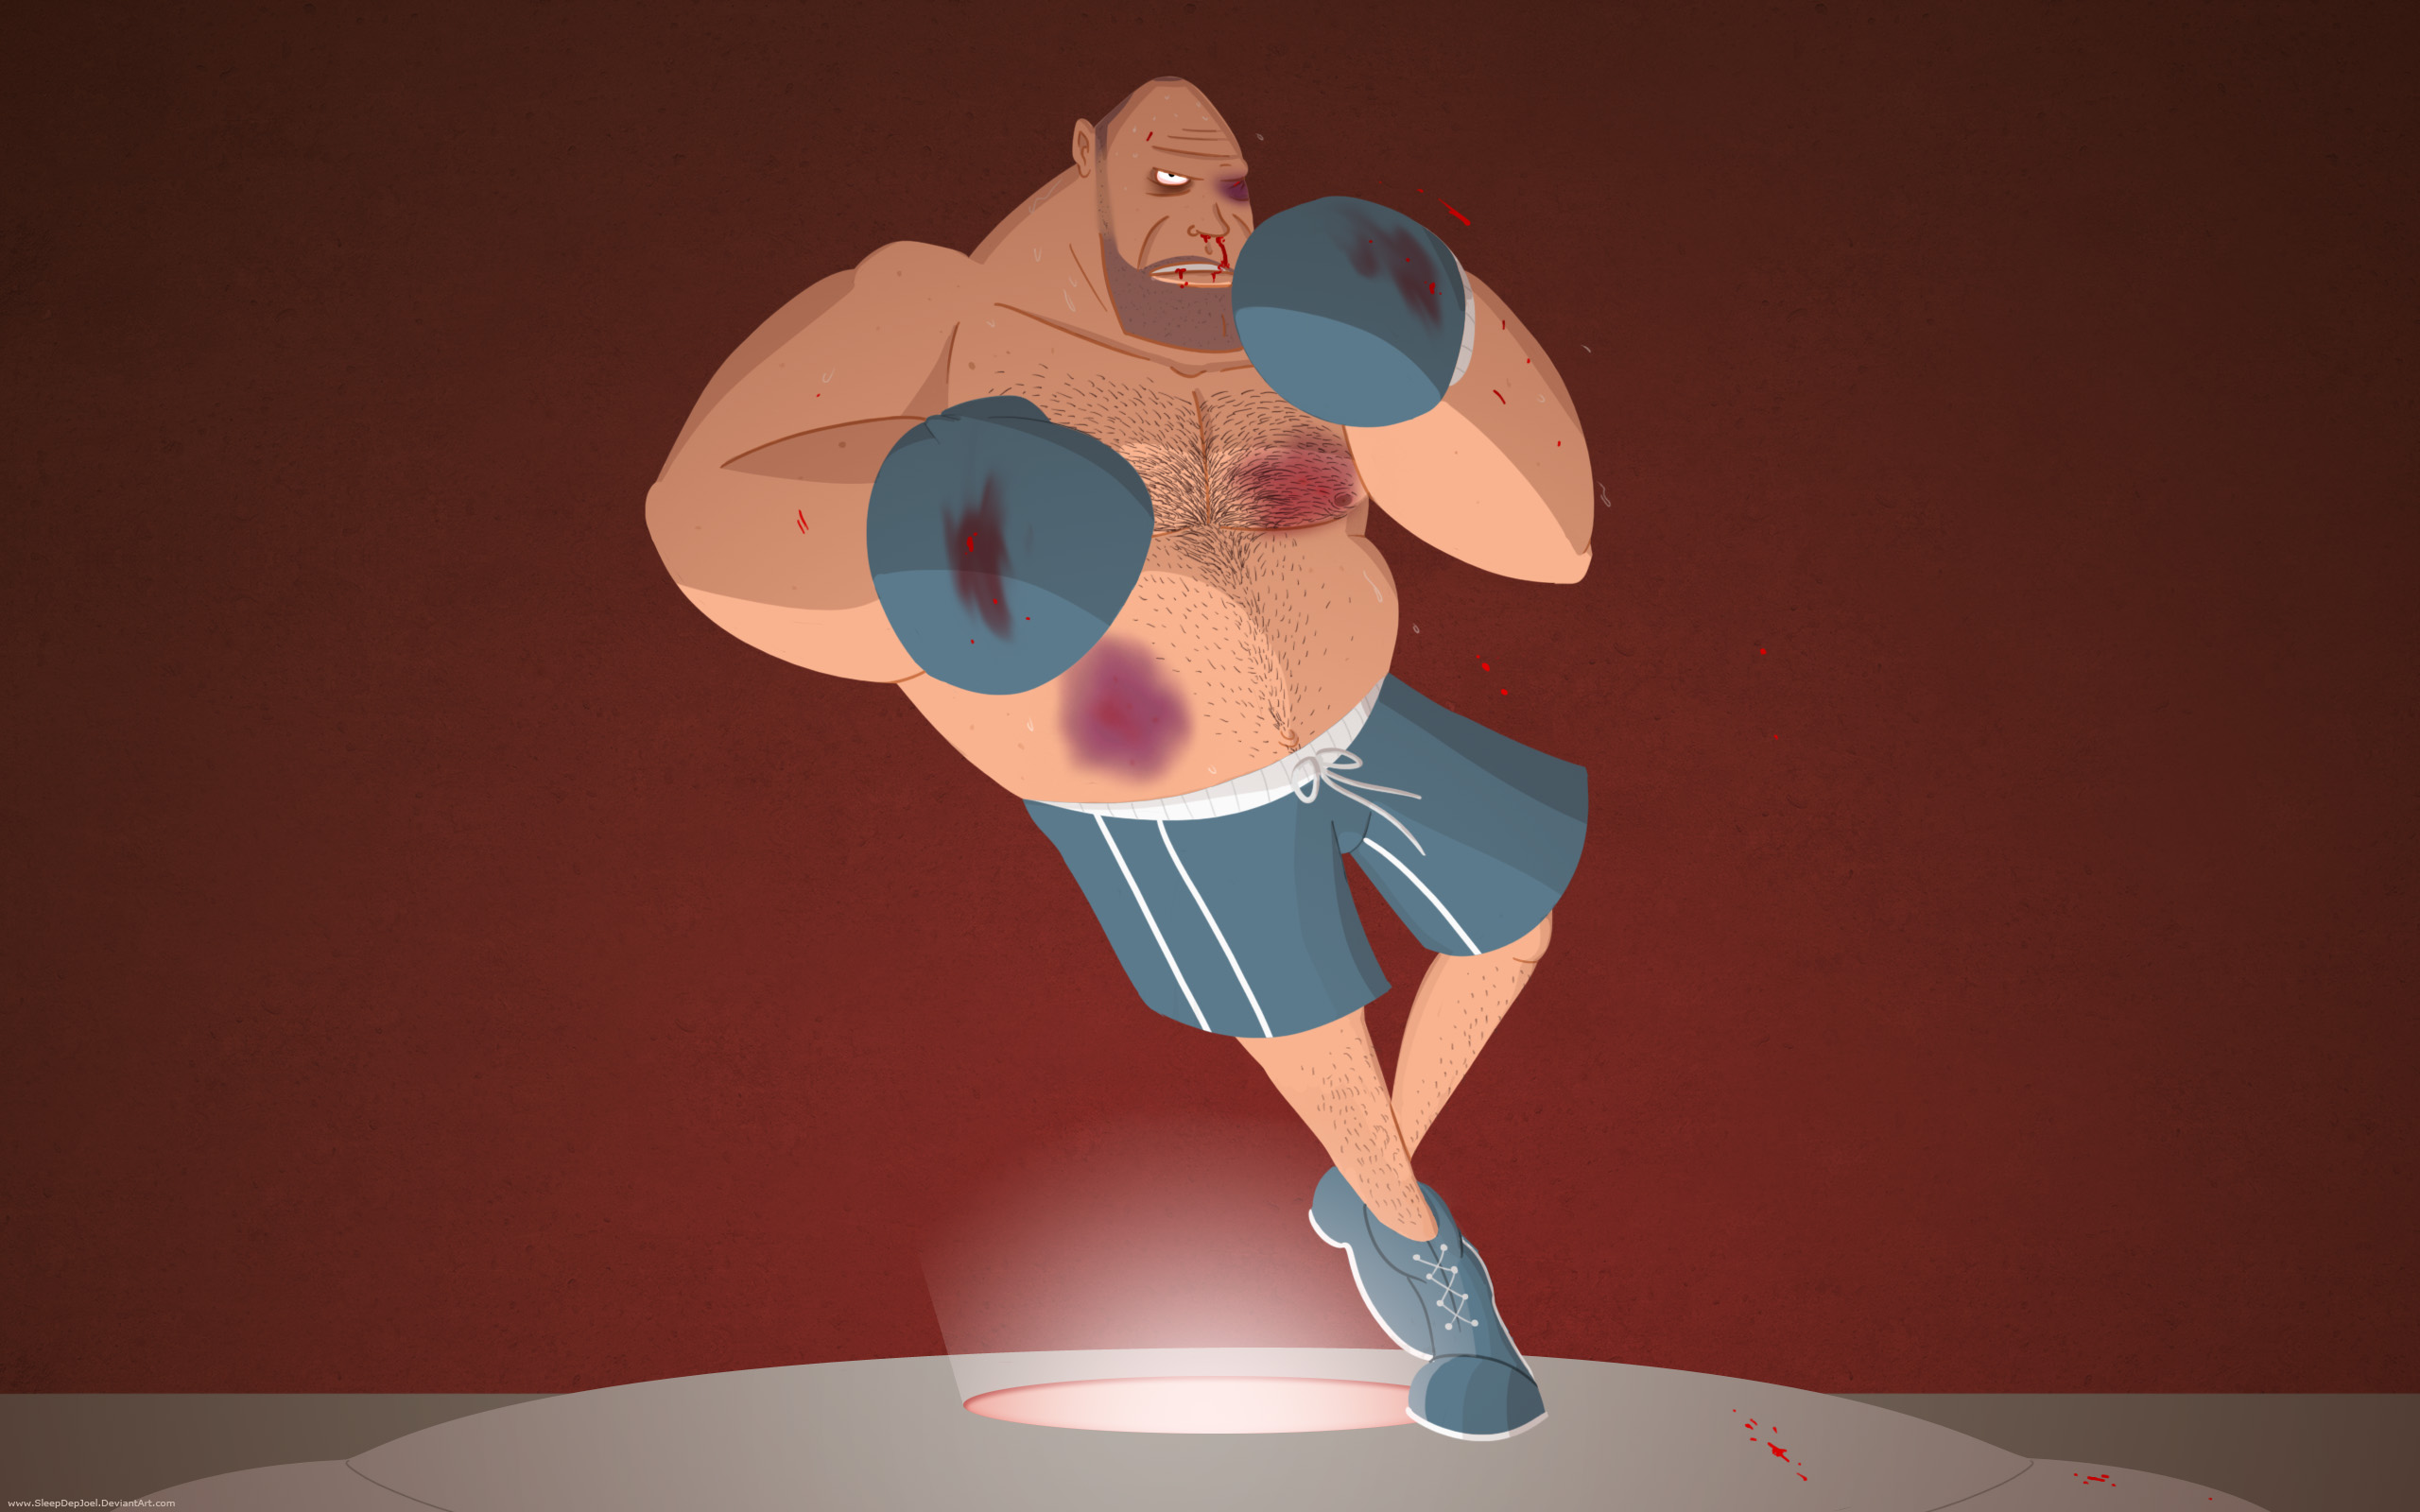 TF2 Heavy Boxing Wallpaper by SleepDepJoel